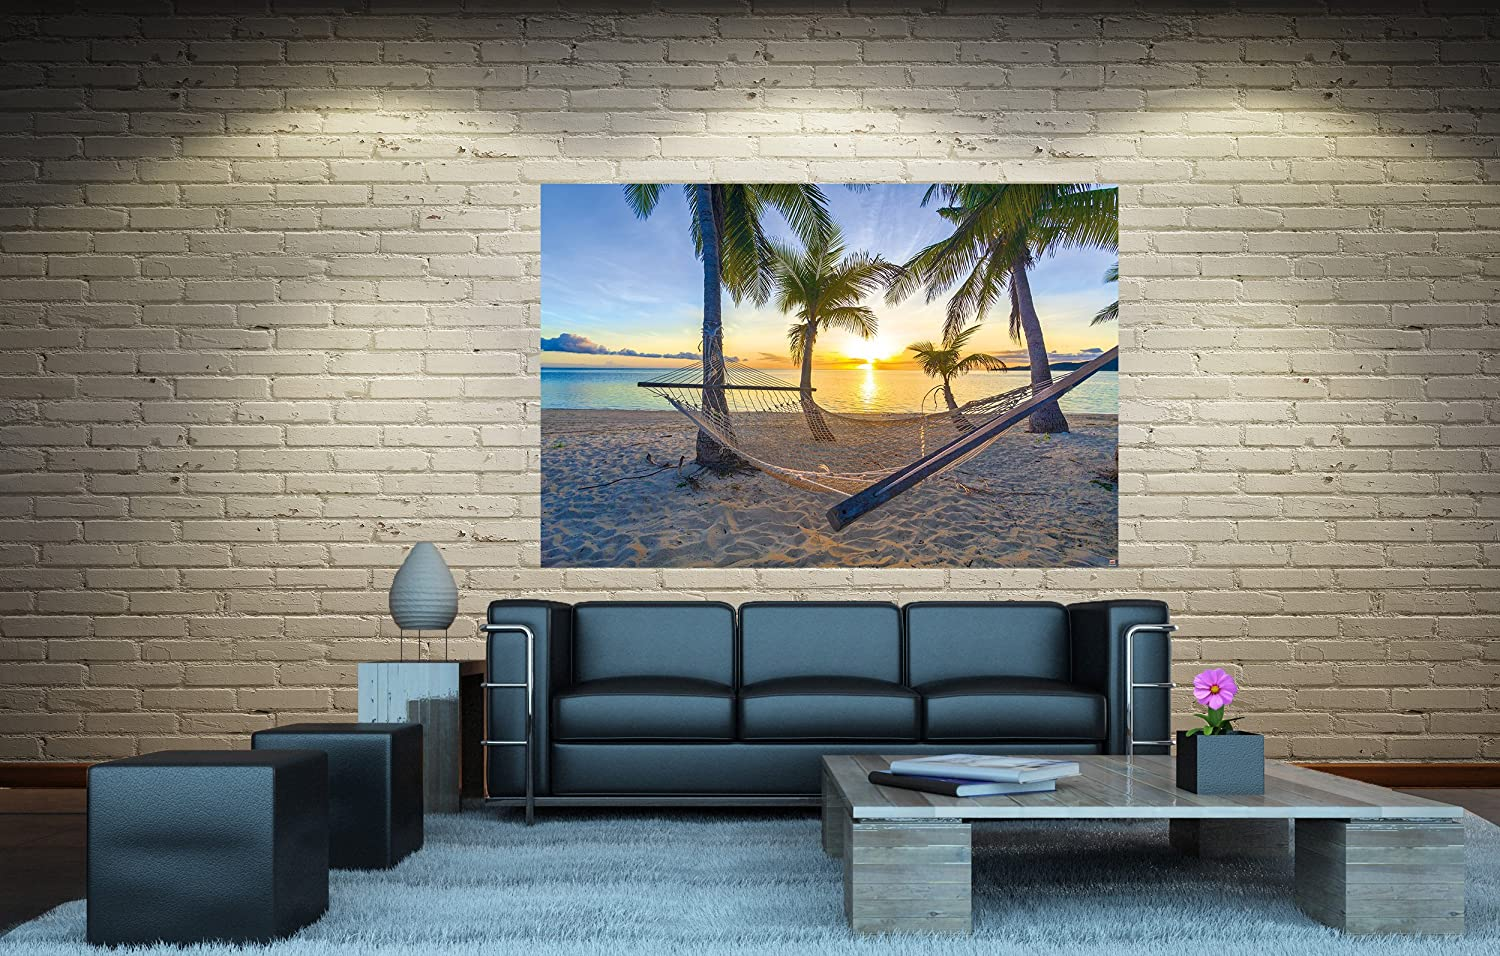 Great Art Poster Stone Wall Mural Home Decoration Modern Stones Look Slate Brick Poster Sandstone Design Decor 55 Inch x 39.4 Inch//140 cm x 100 cm